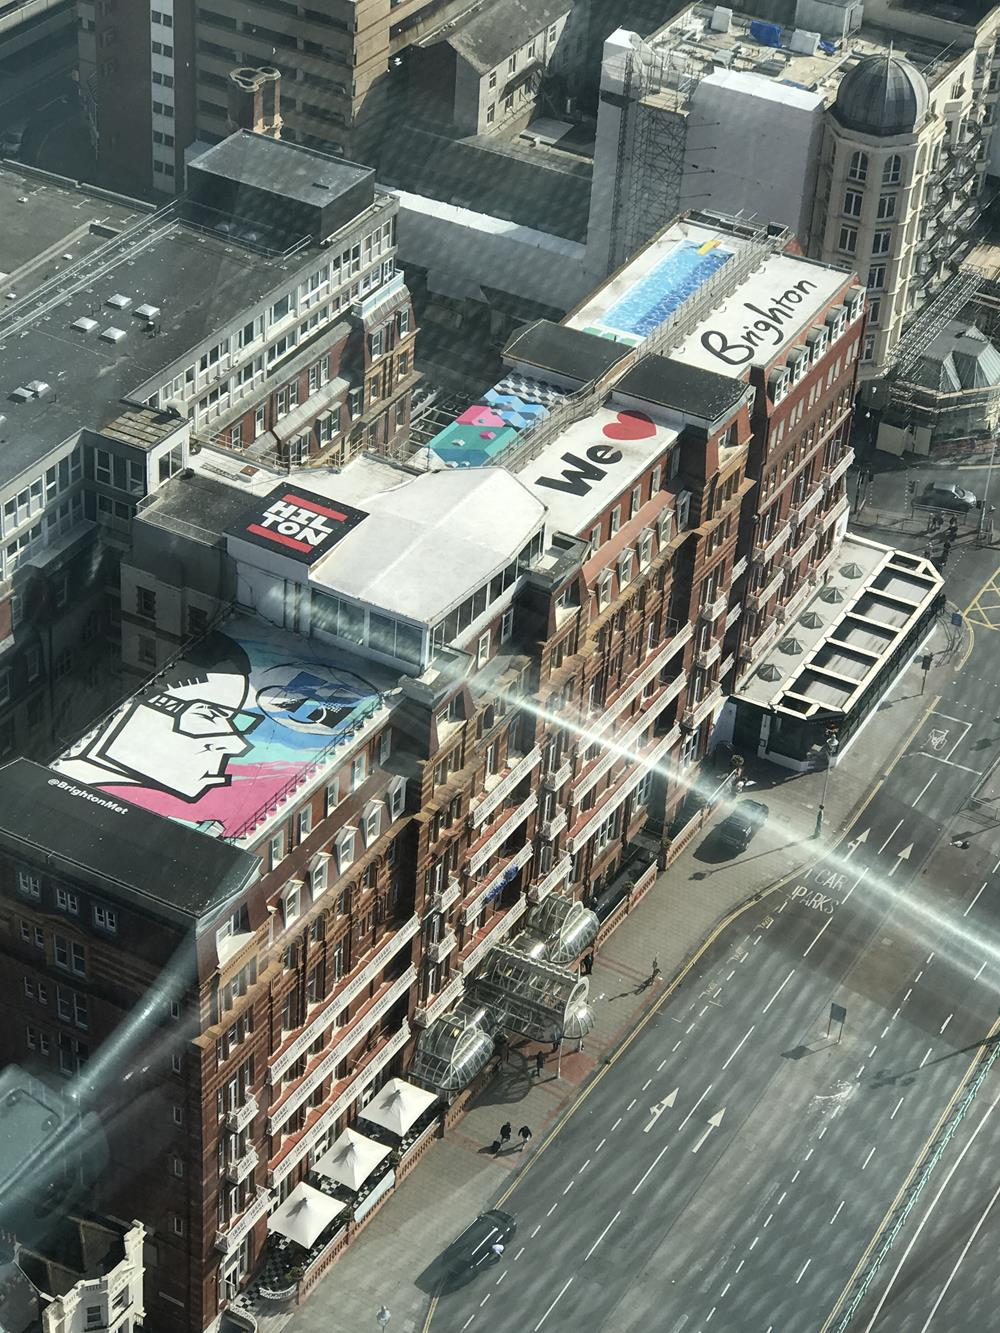 Brighton Hilton hotel with street art on the top. Visible from the i360 attraction which is next to the West Pier!